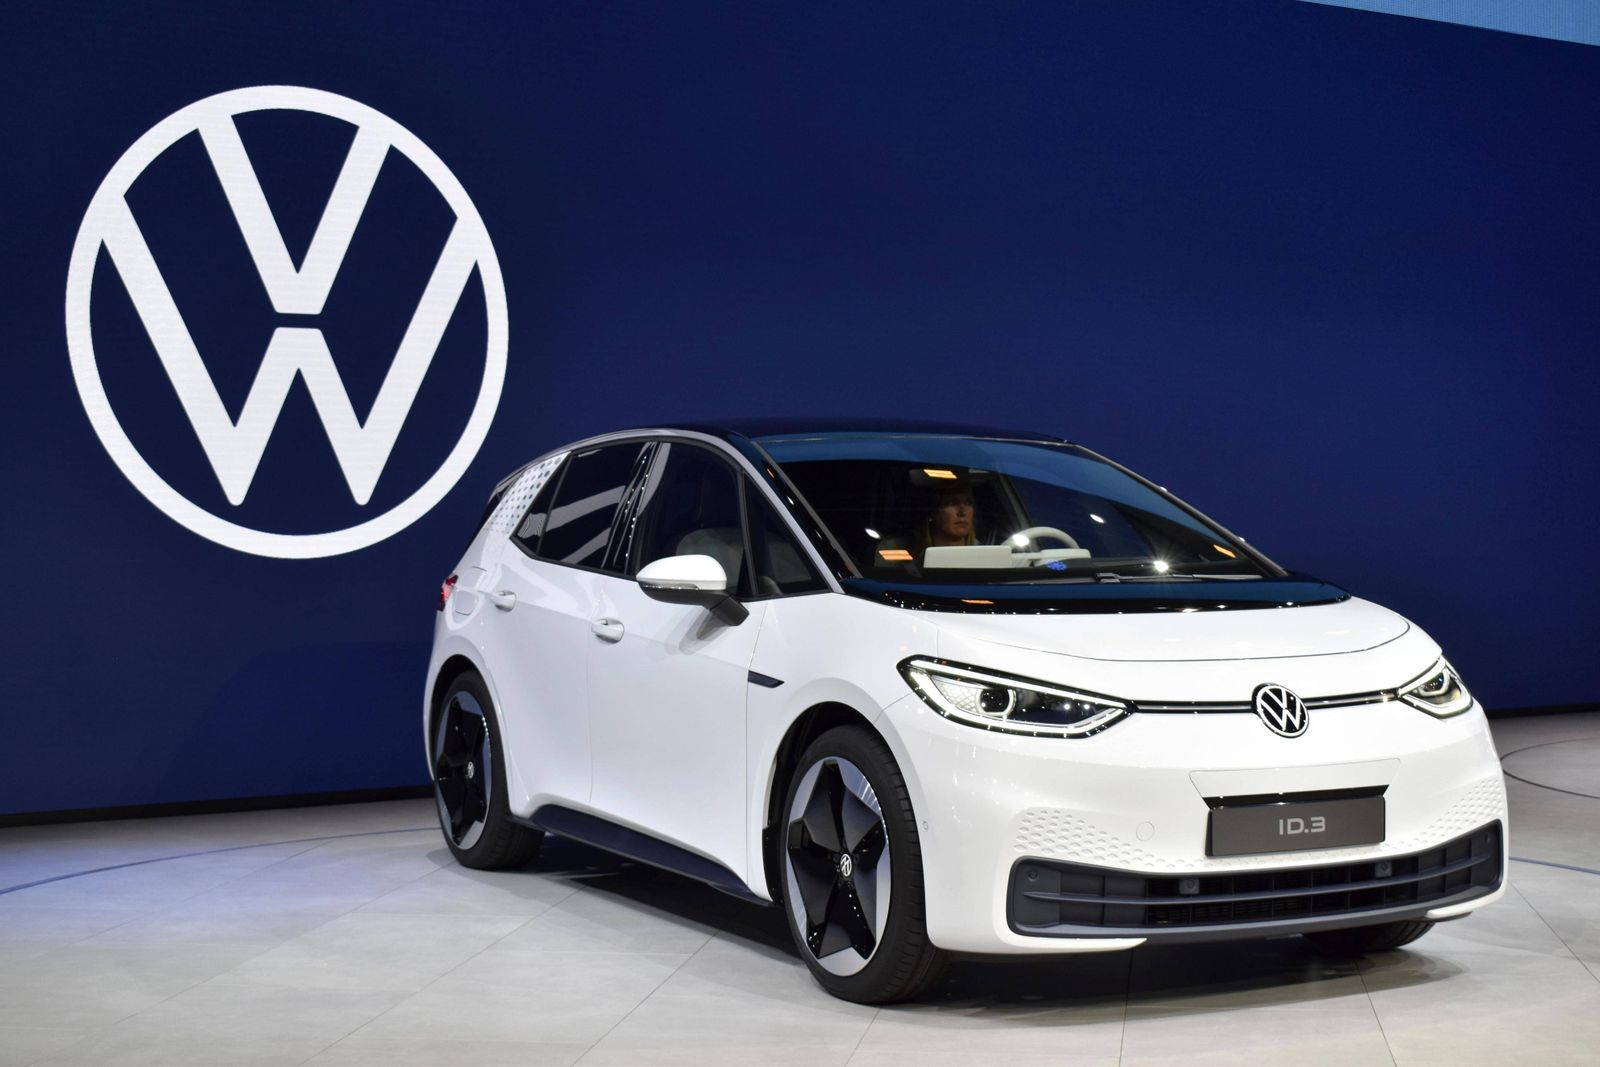 Volkswagen unveils new electric car Volkswagen AG s new electric car ID. 3 is unveiled to the media in Frankfurt on Sep